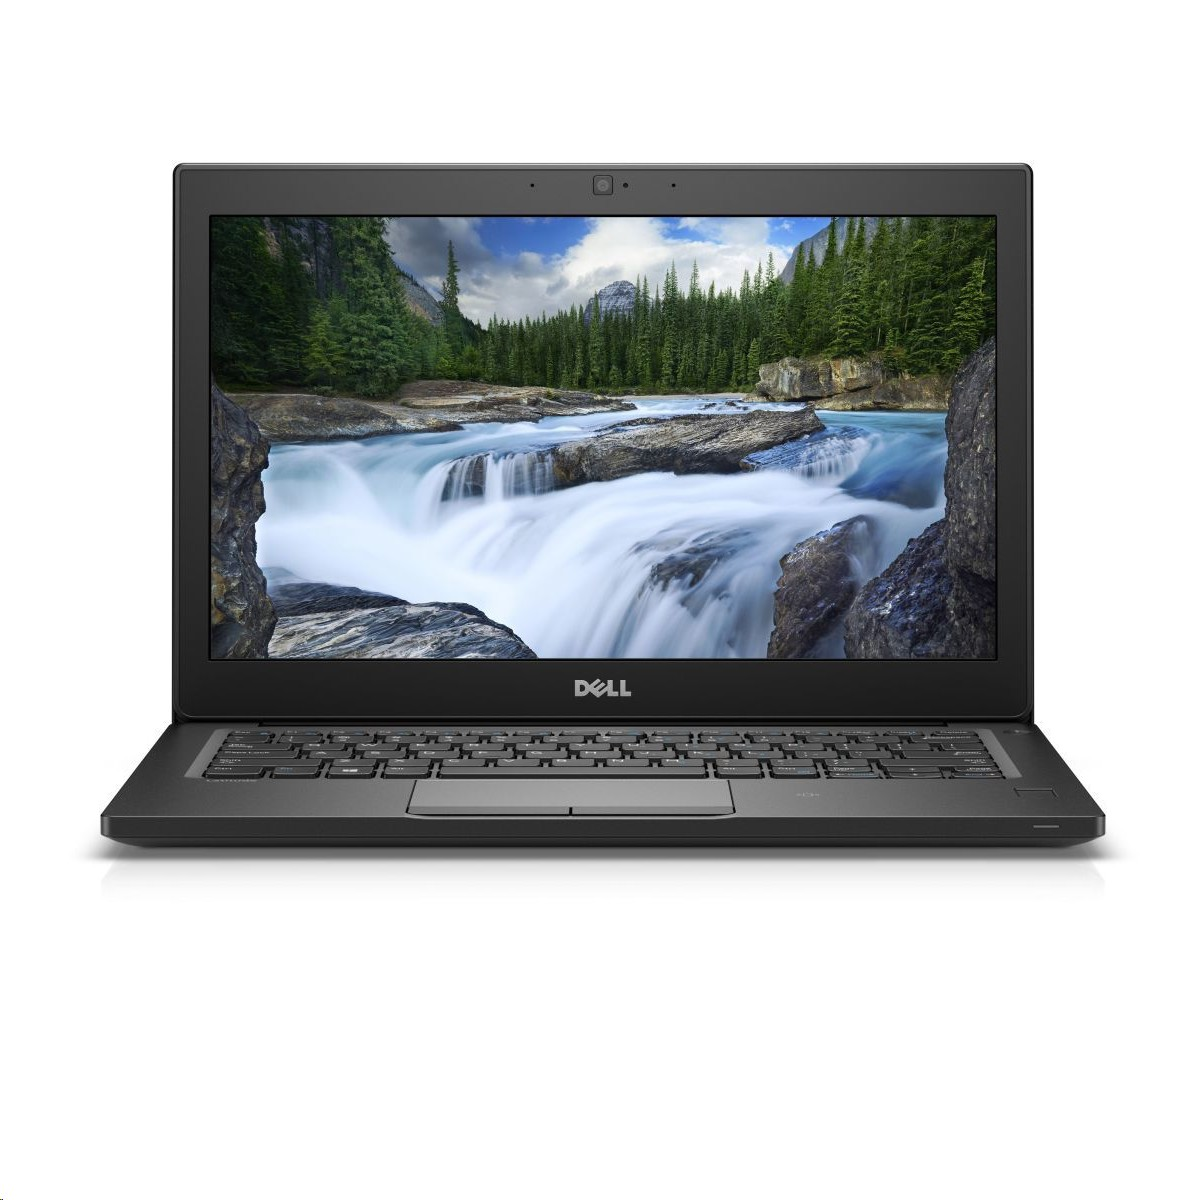 Dell Latitude 7290 Intel Core i5-8350U 1.7GHz 8GB 256GB W10P Non Touch 12.5 Notebook RNNP4